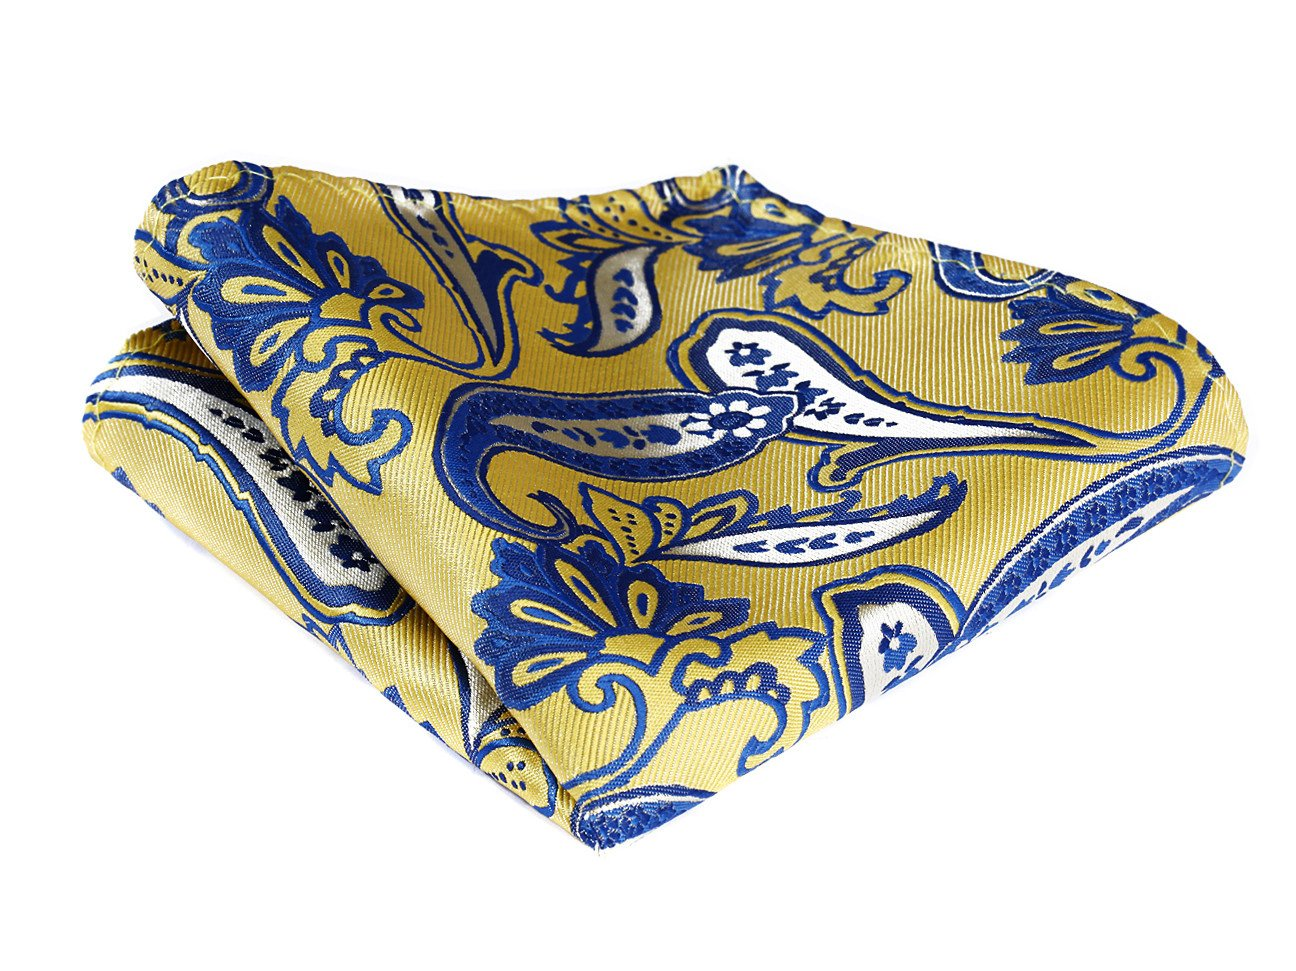 HISDERN Men's Check Paisley Floral Dot Striped Wedding Party Pocket Square Handkerchief Yellow / Blue HP905Y